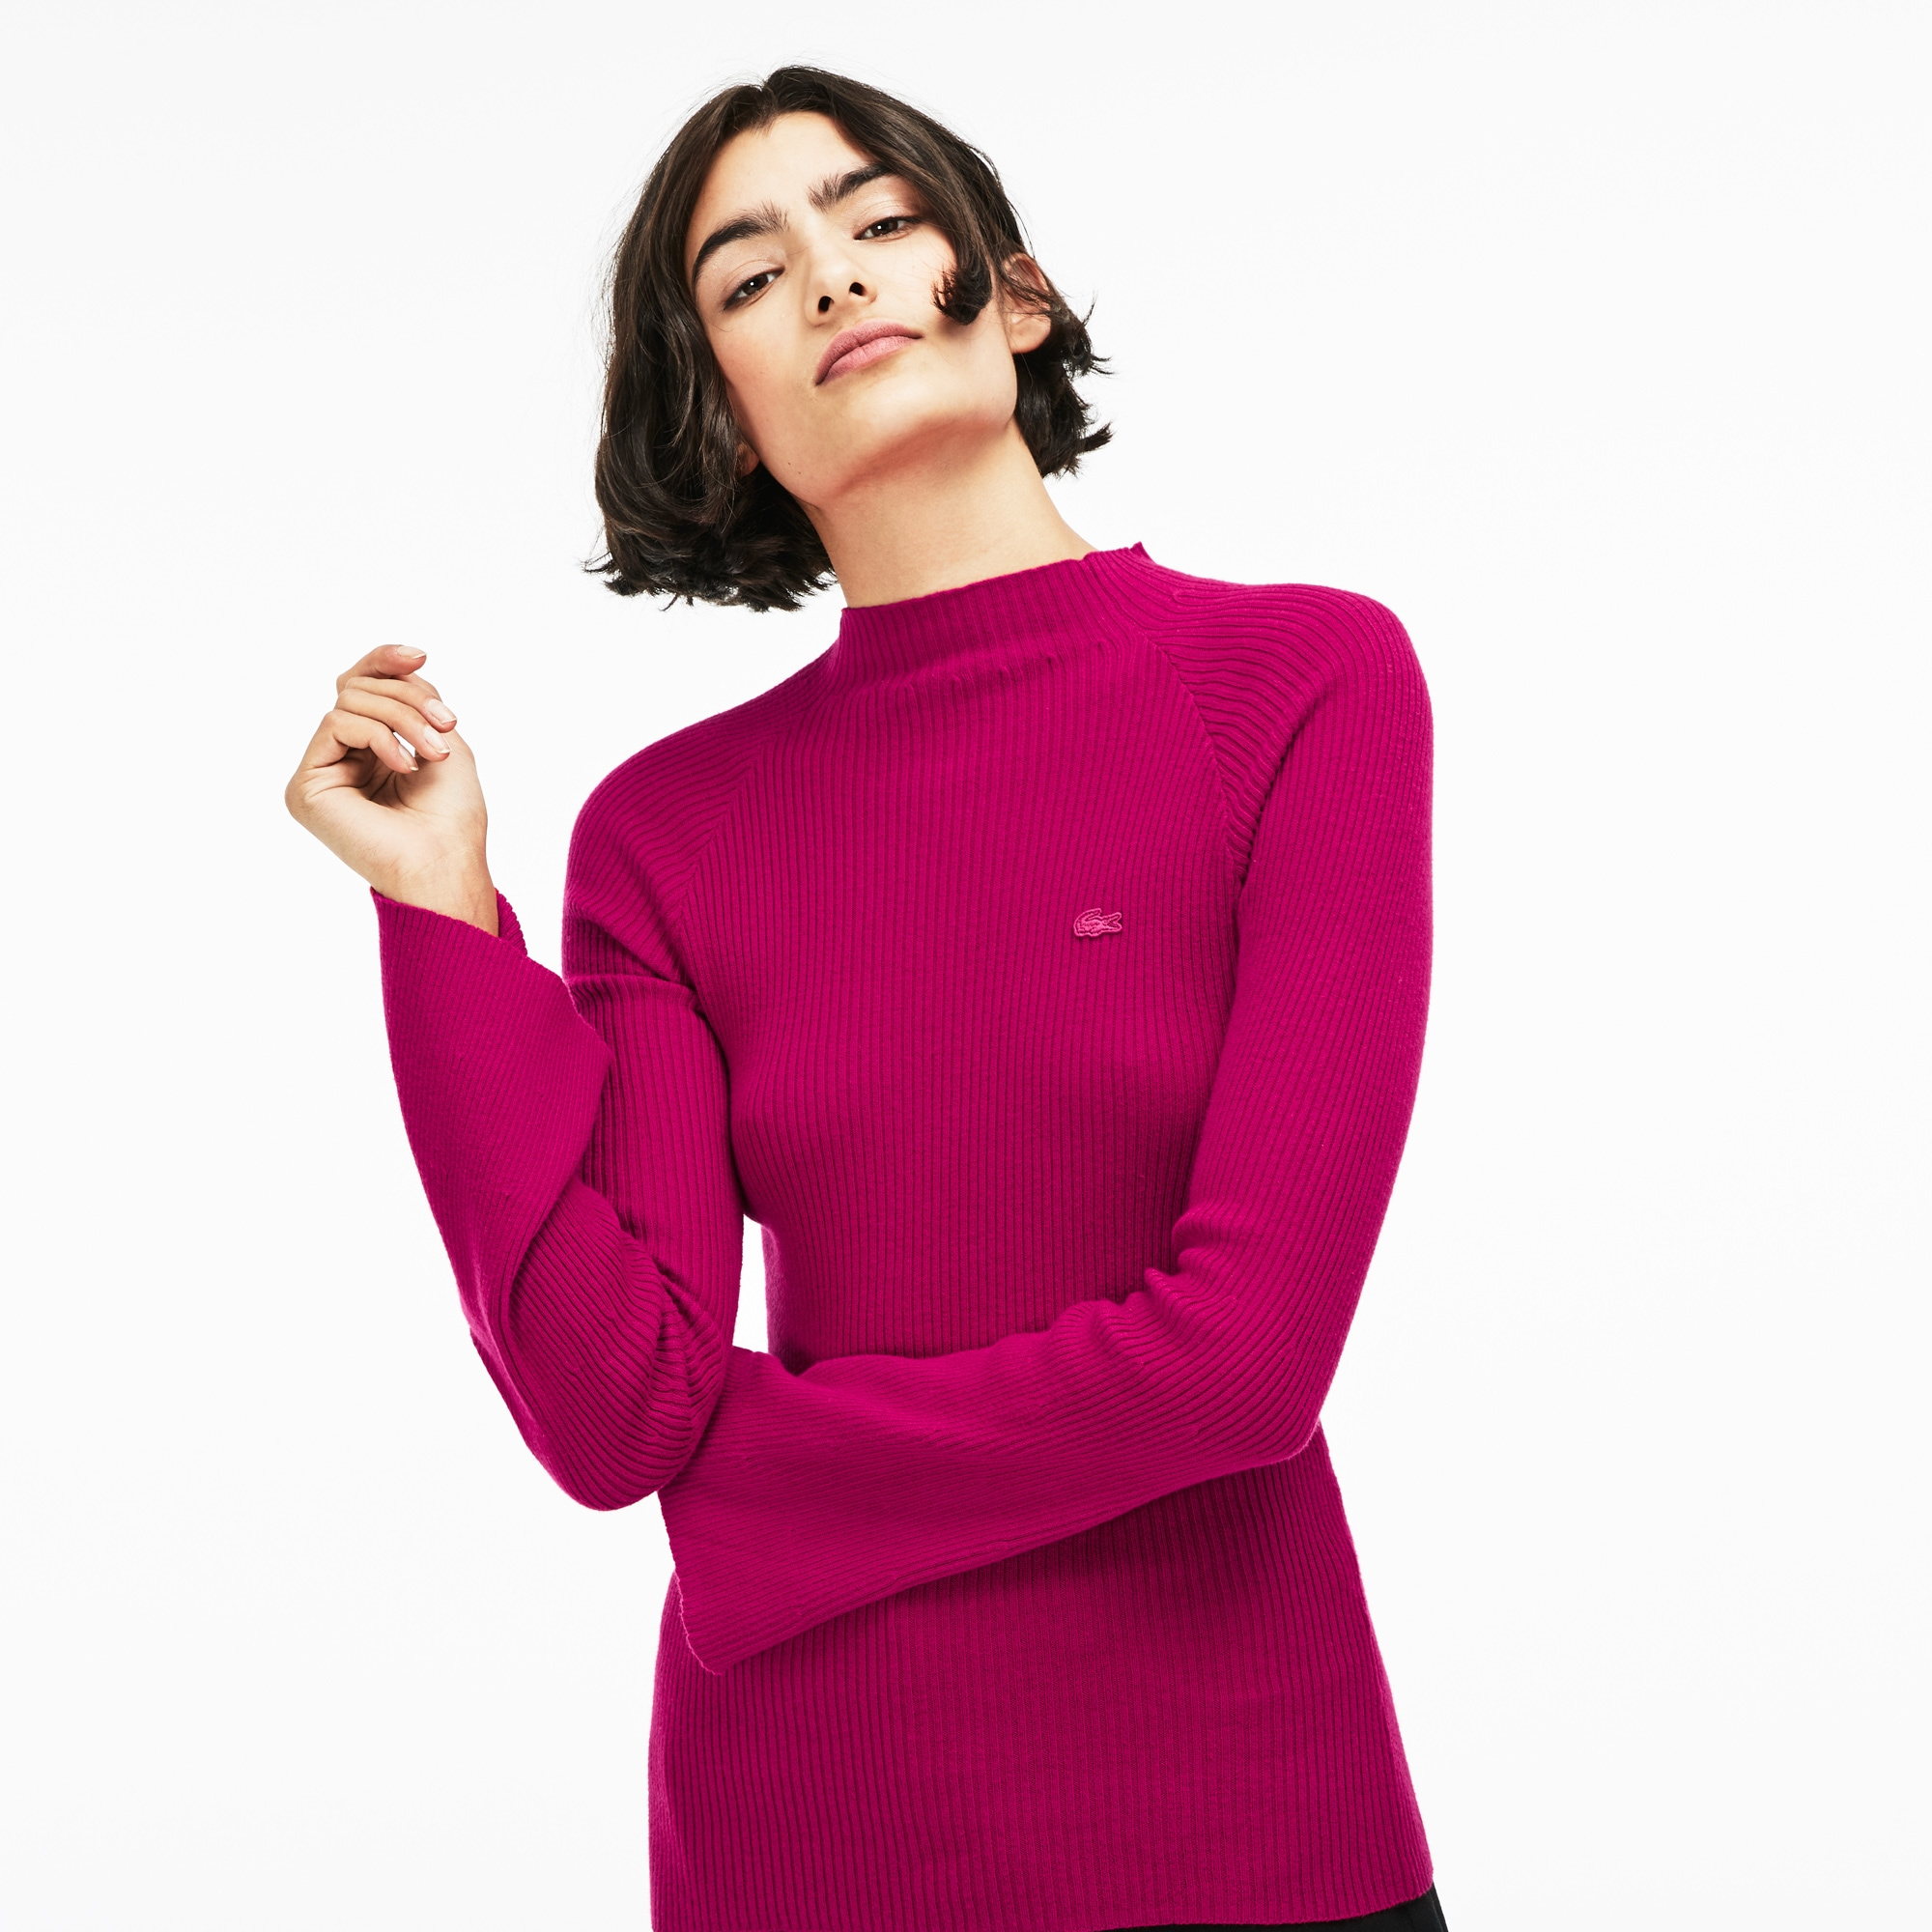 Women's Lacoste LIVE Ribbed Cotton And Cashmere Sweater